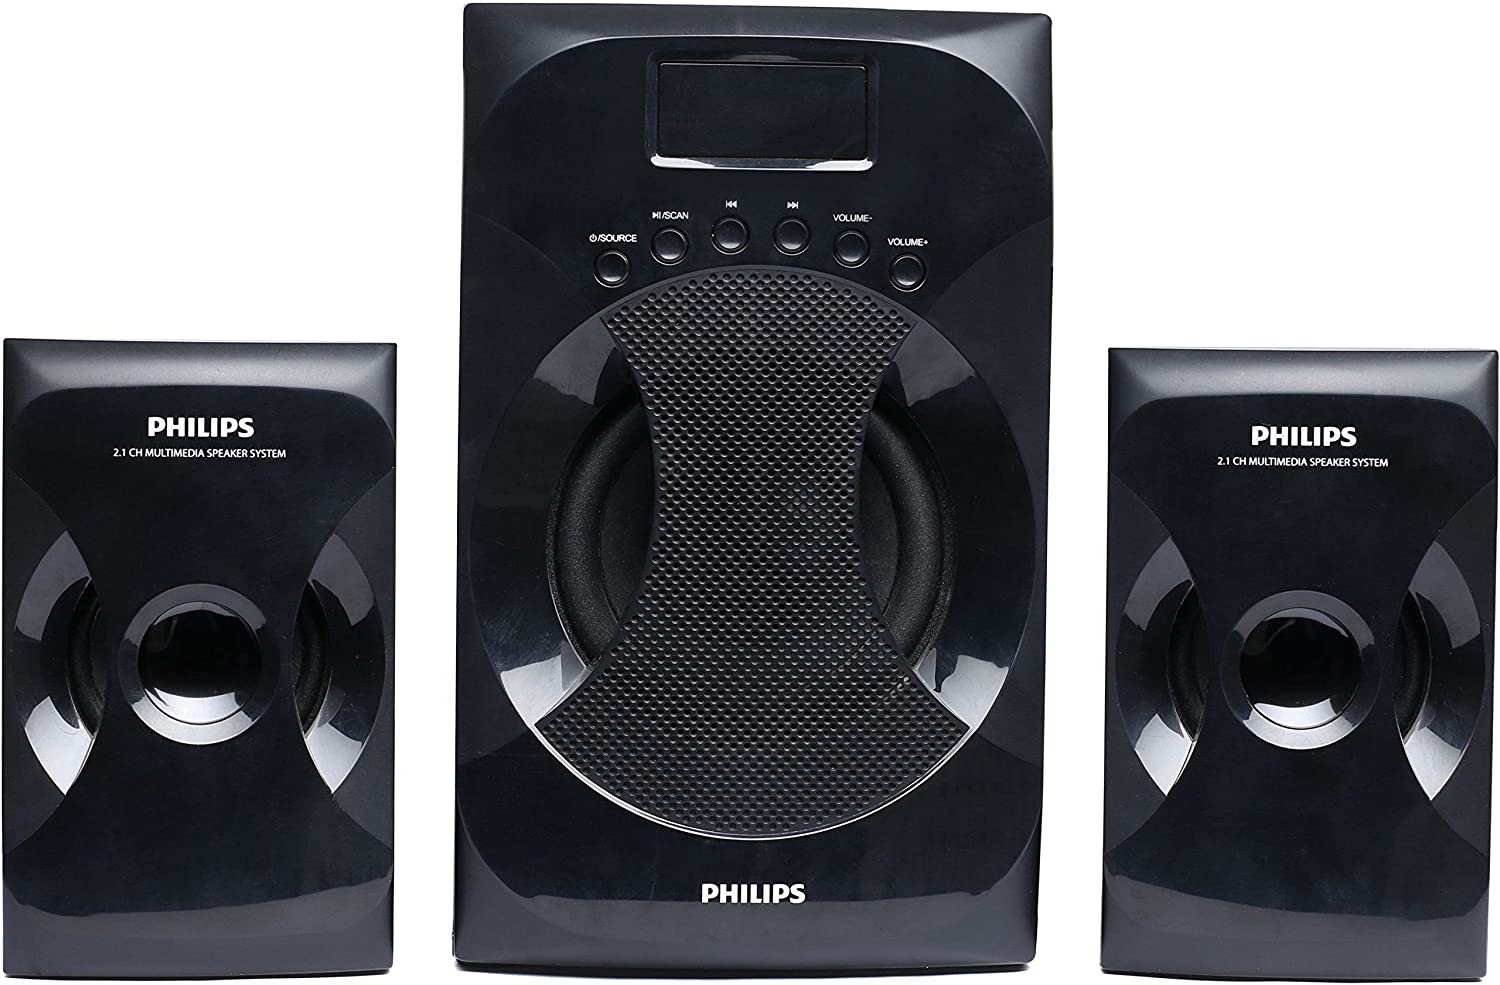 Philips Mms 4040f 94 21 Channel Multimedia Speaker System Black And Cheap Audio Systems 32w Hi Fi Amplifier Circuit Diagram Price Buy Online In